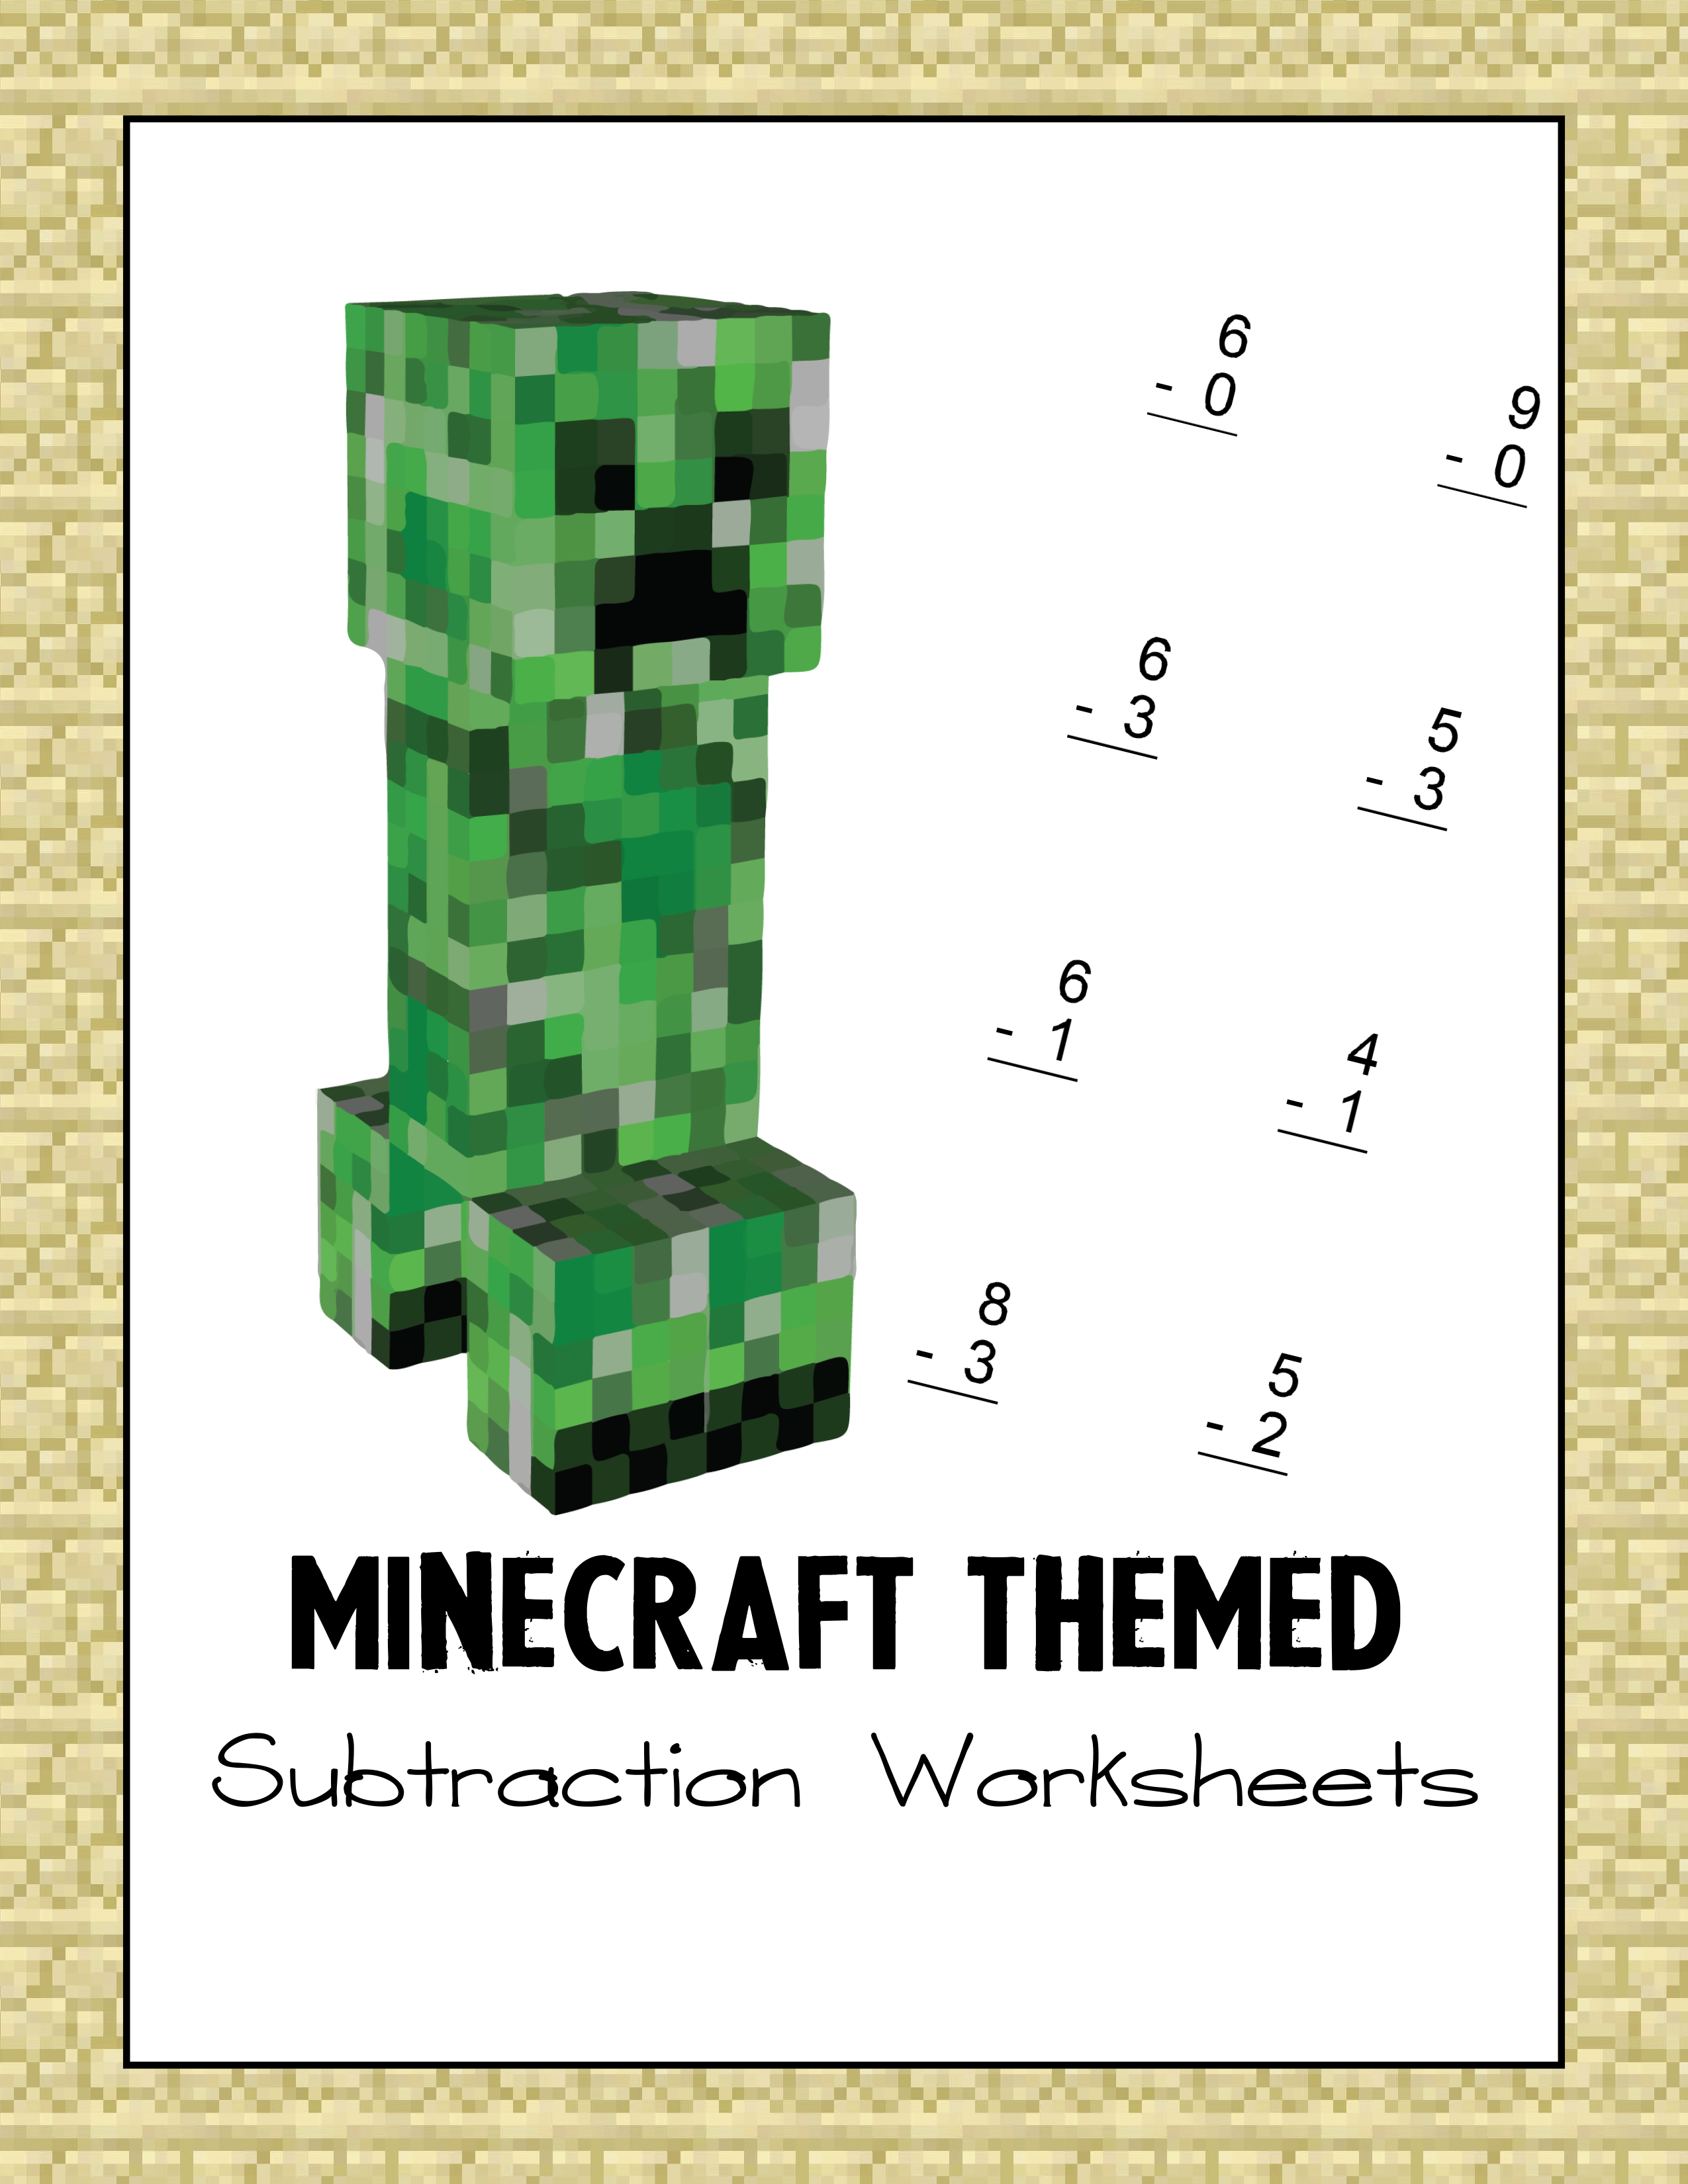 Minecraft Subtraction Worksheet-1